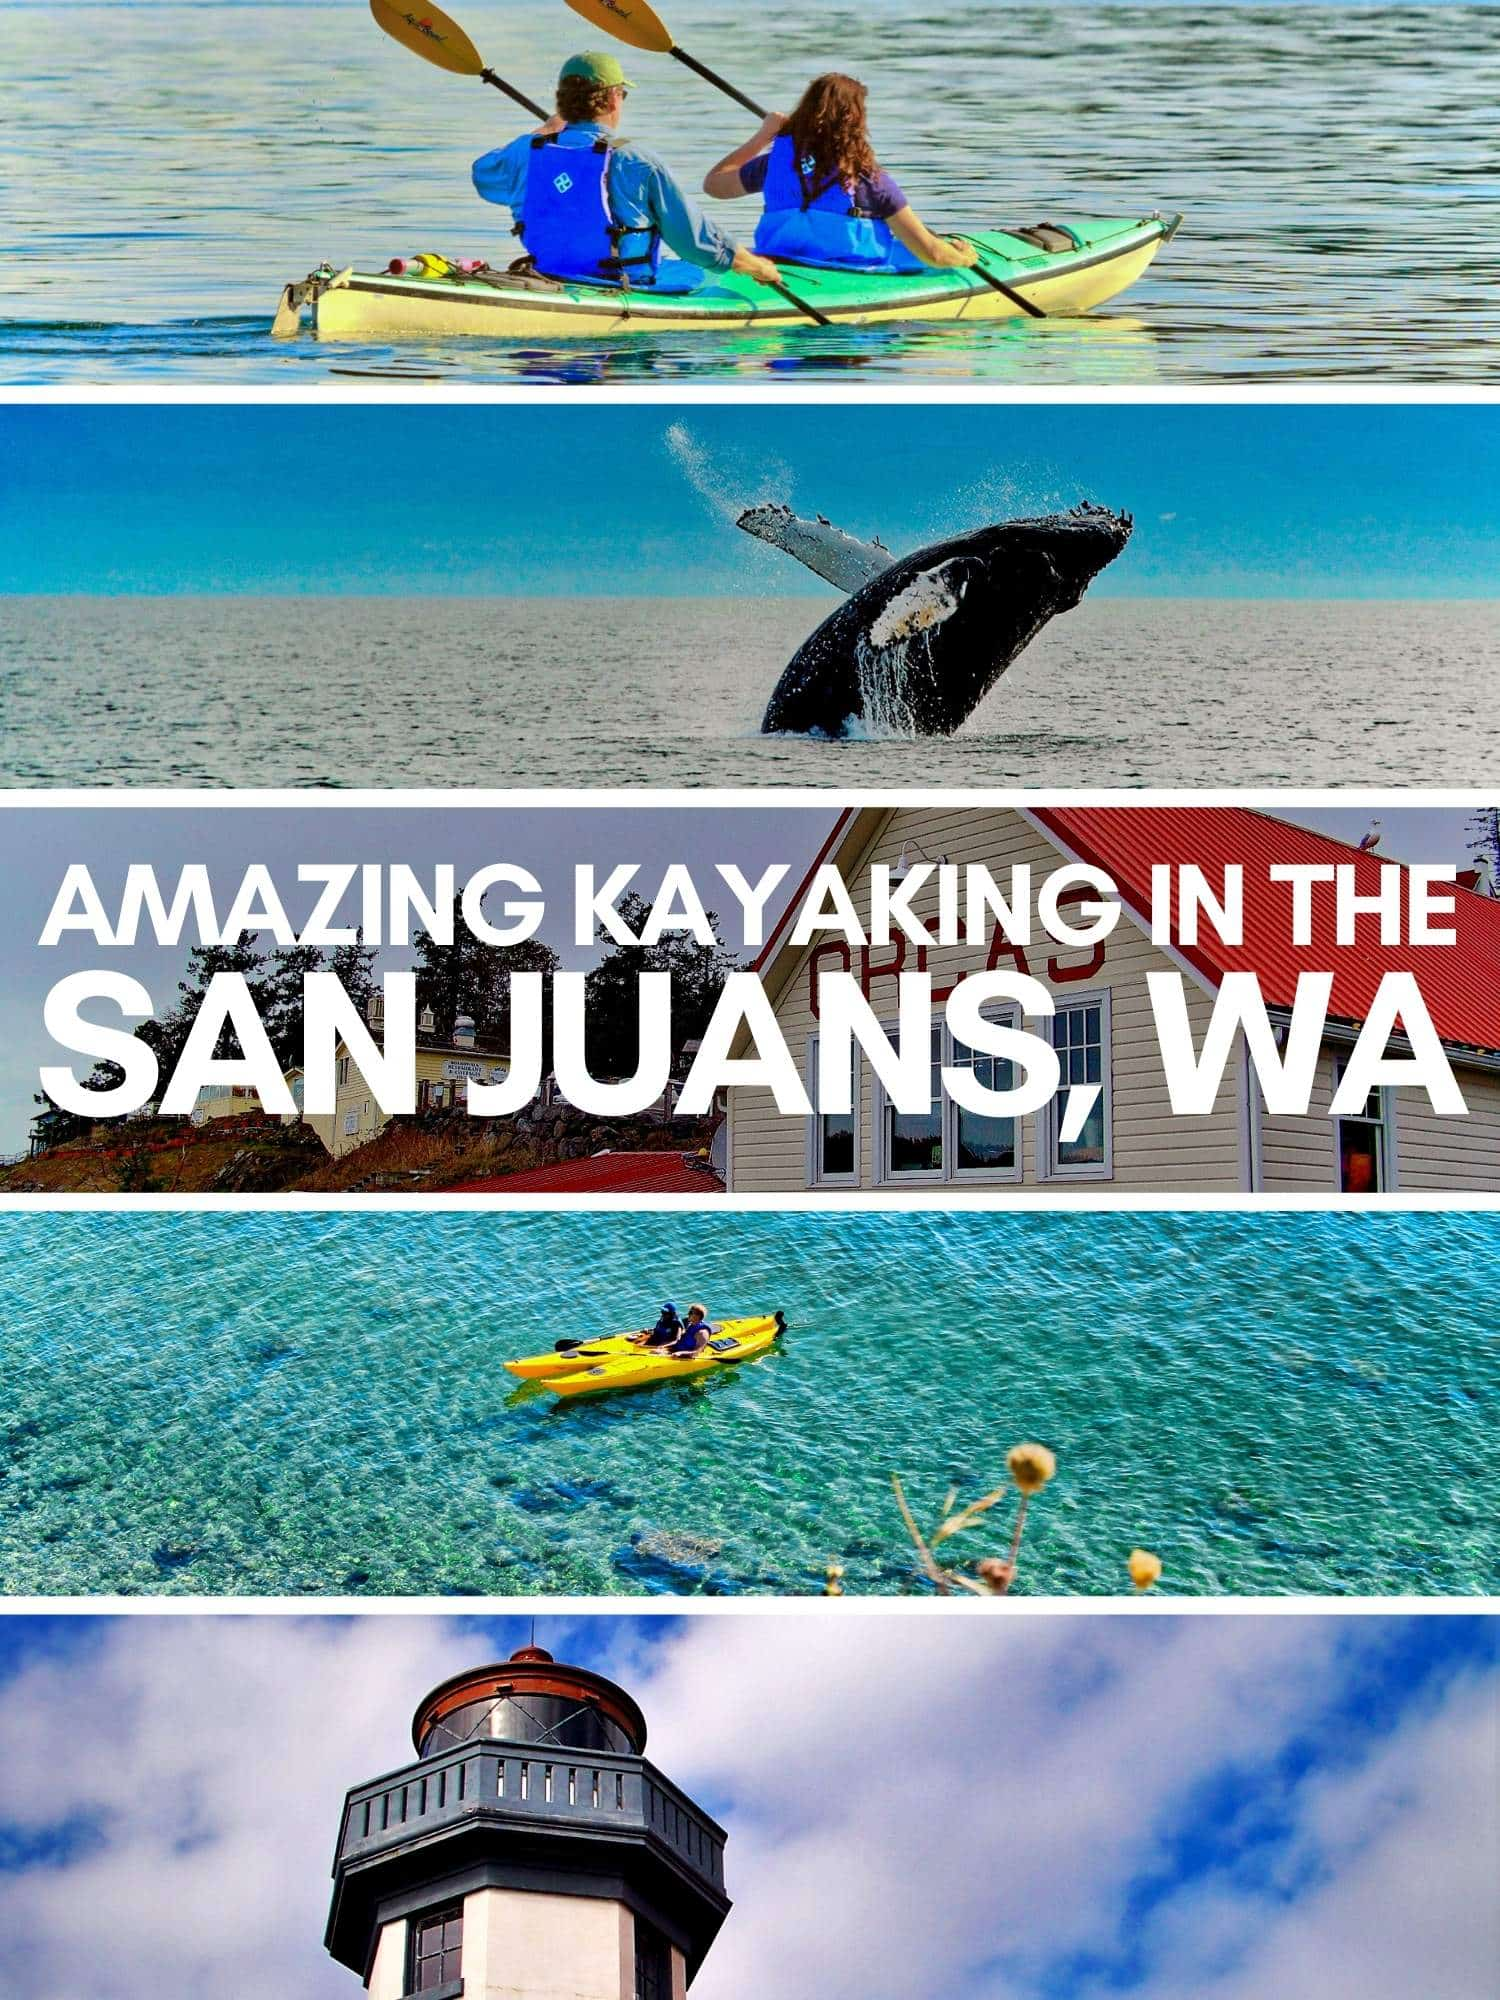 Best kayaking in the San Juan Islands of Washington. Kayak tours and best places to launch in the San Juans, including bioluminescence and kayaking with orcas near Seattle. Best places to launch kayaks on Orcas, Shaw, Lopez and San Juan Island.